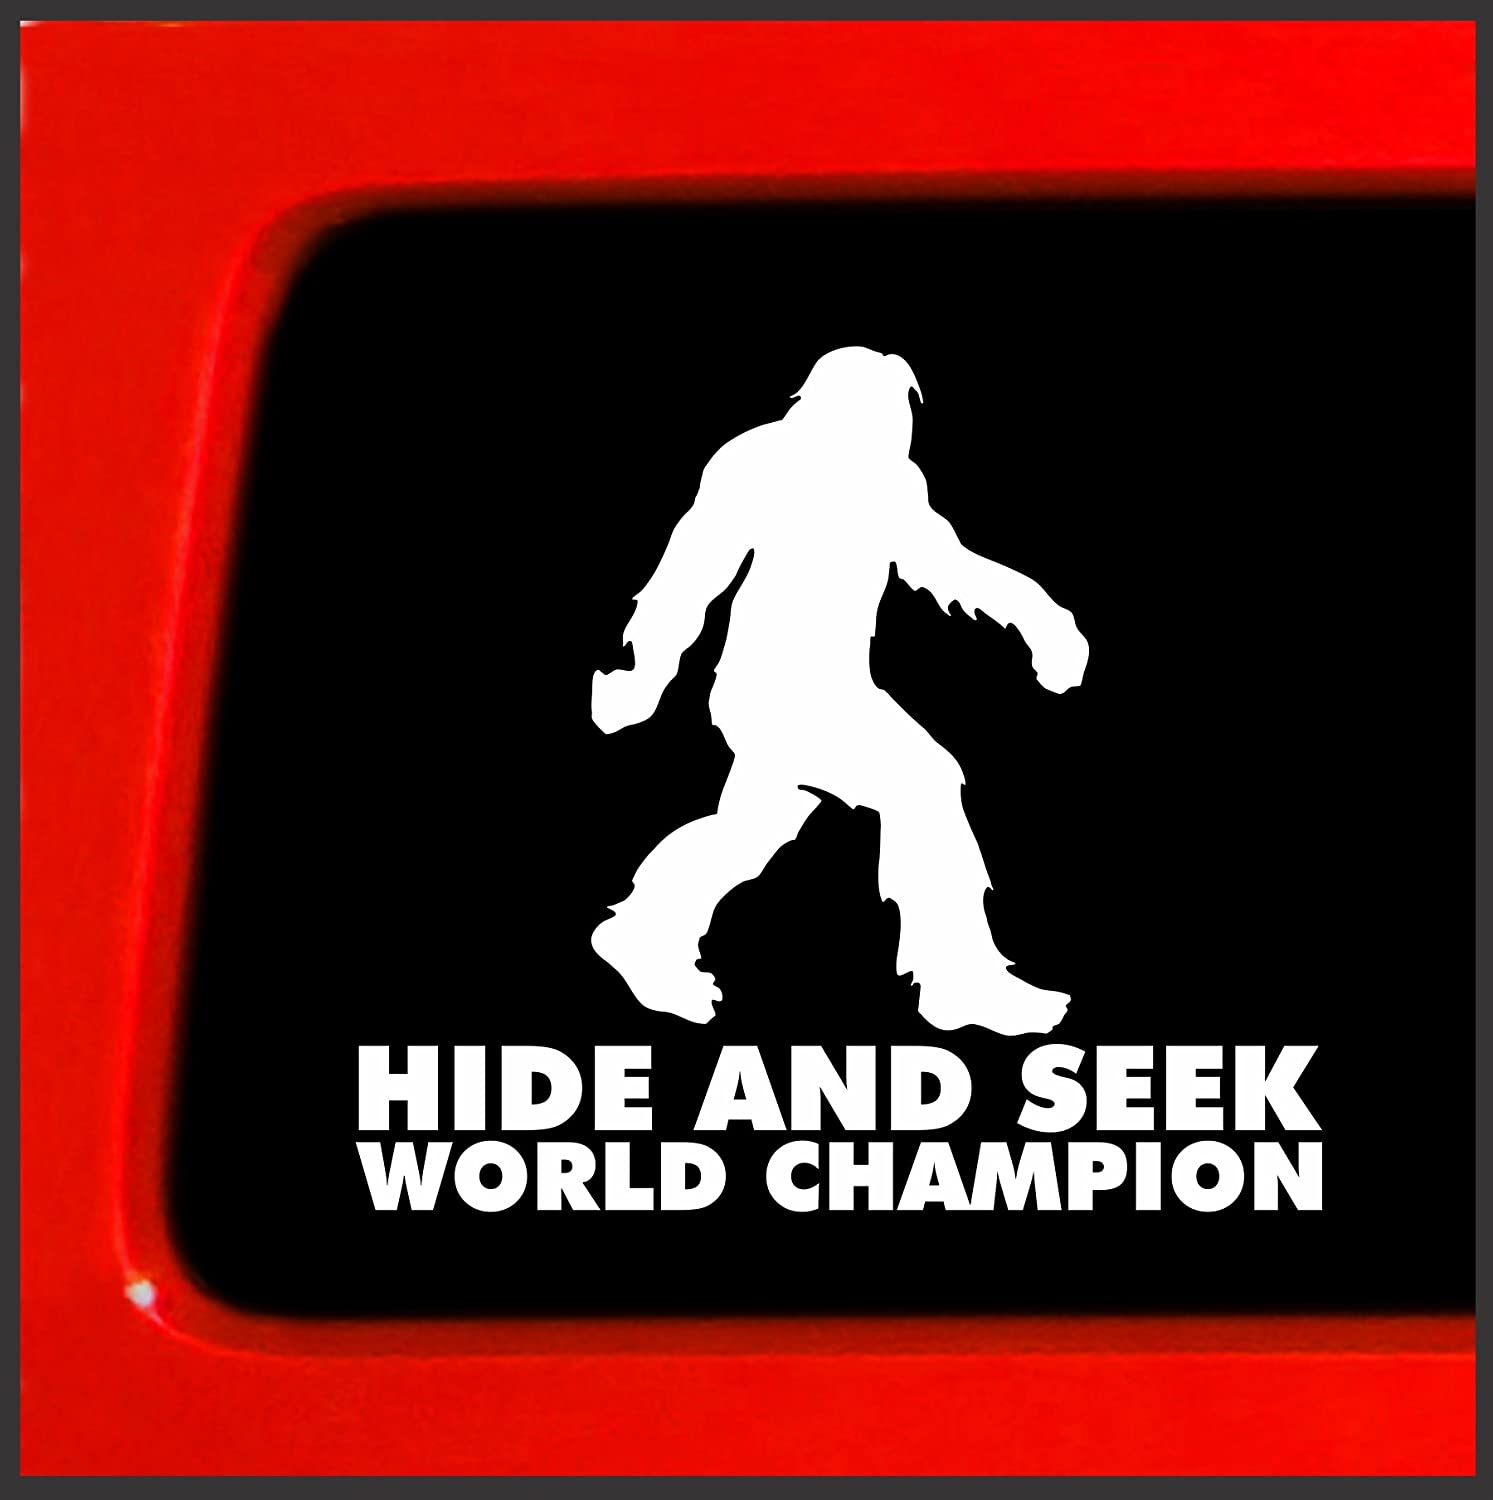 Amazoncom Bigfoot Hide And Seek World Champion Vinyl Decal - Funny car decal stickers